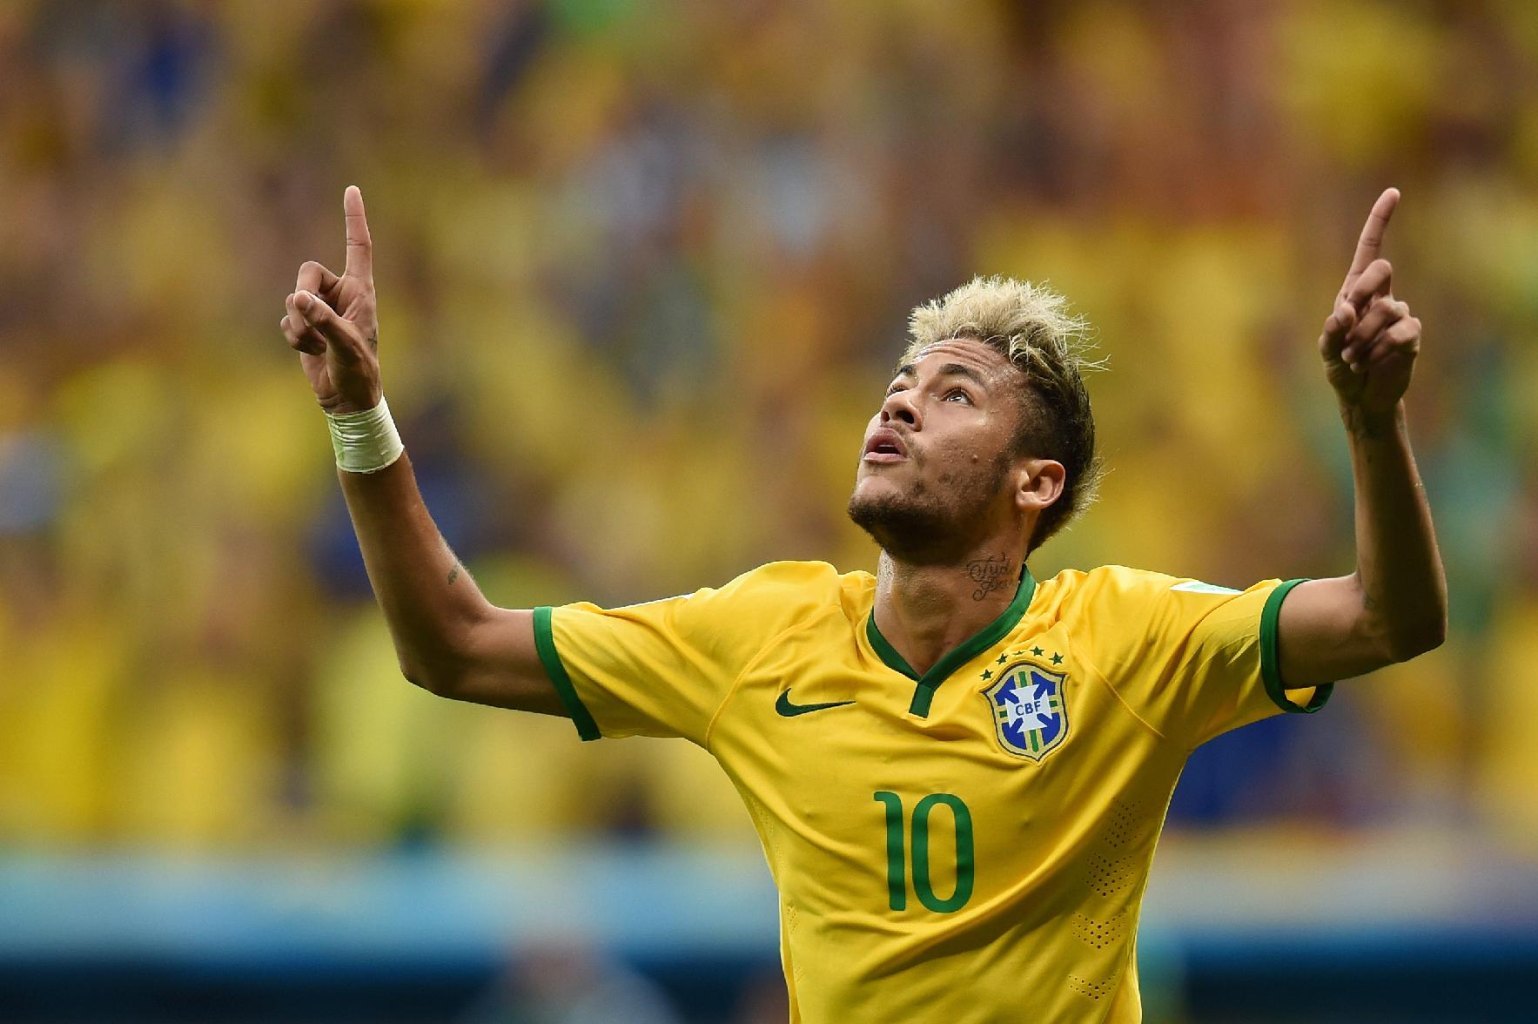 Neymar with Brazil's number 10 jersey in the FIFA World Cup 2014